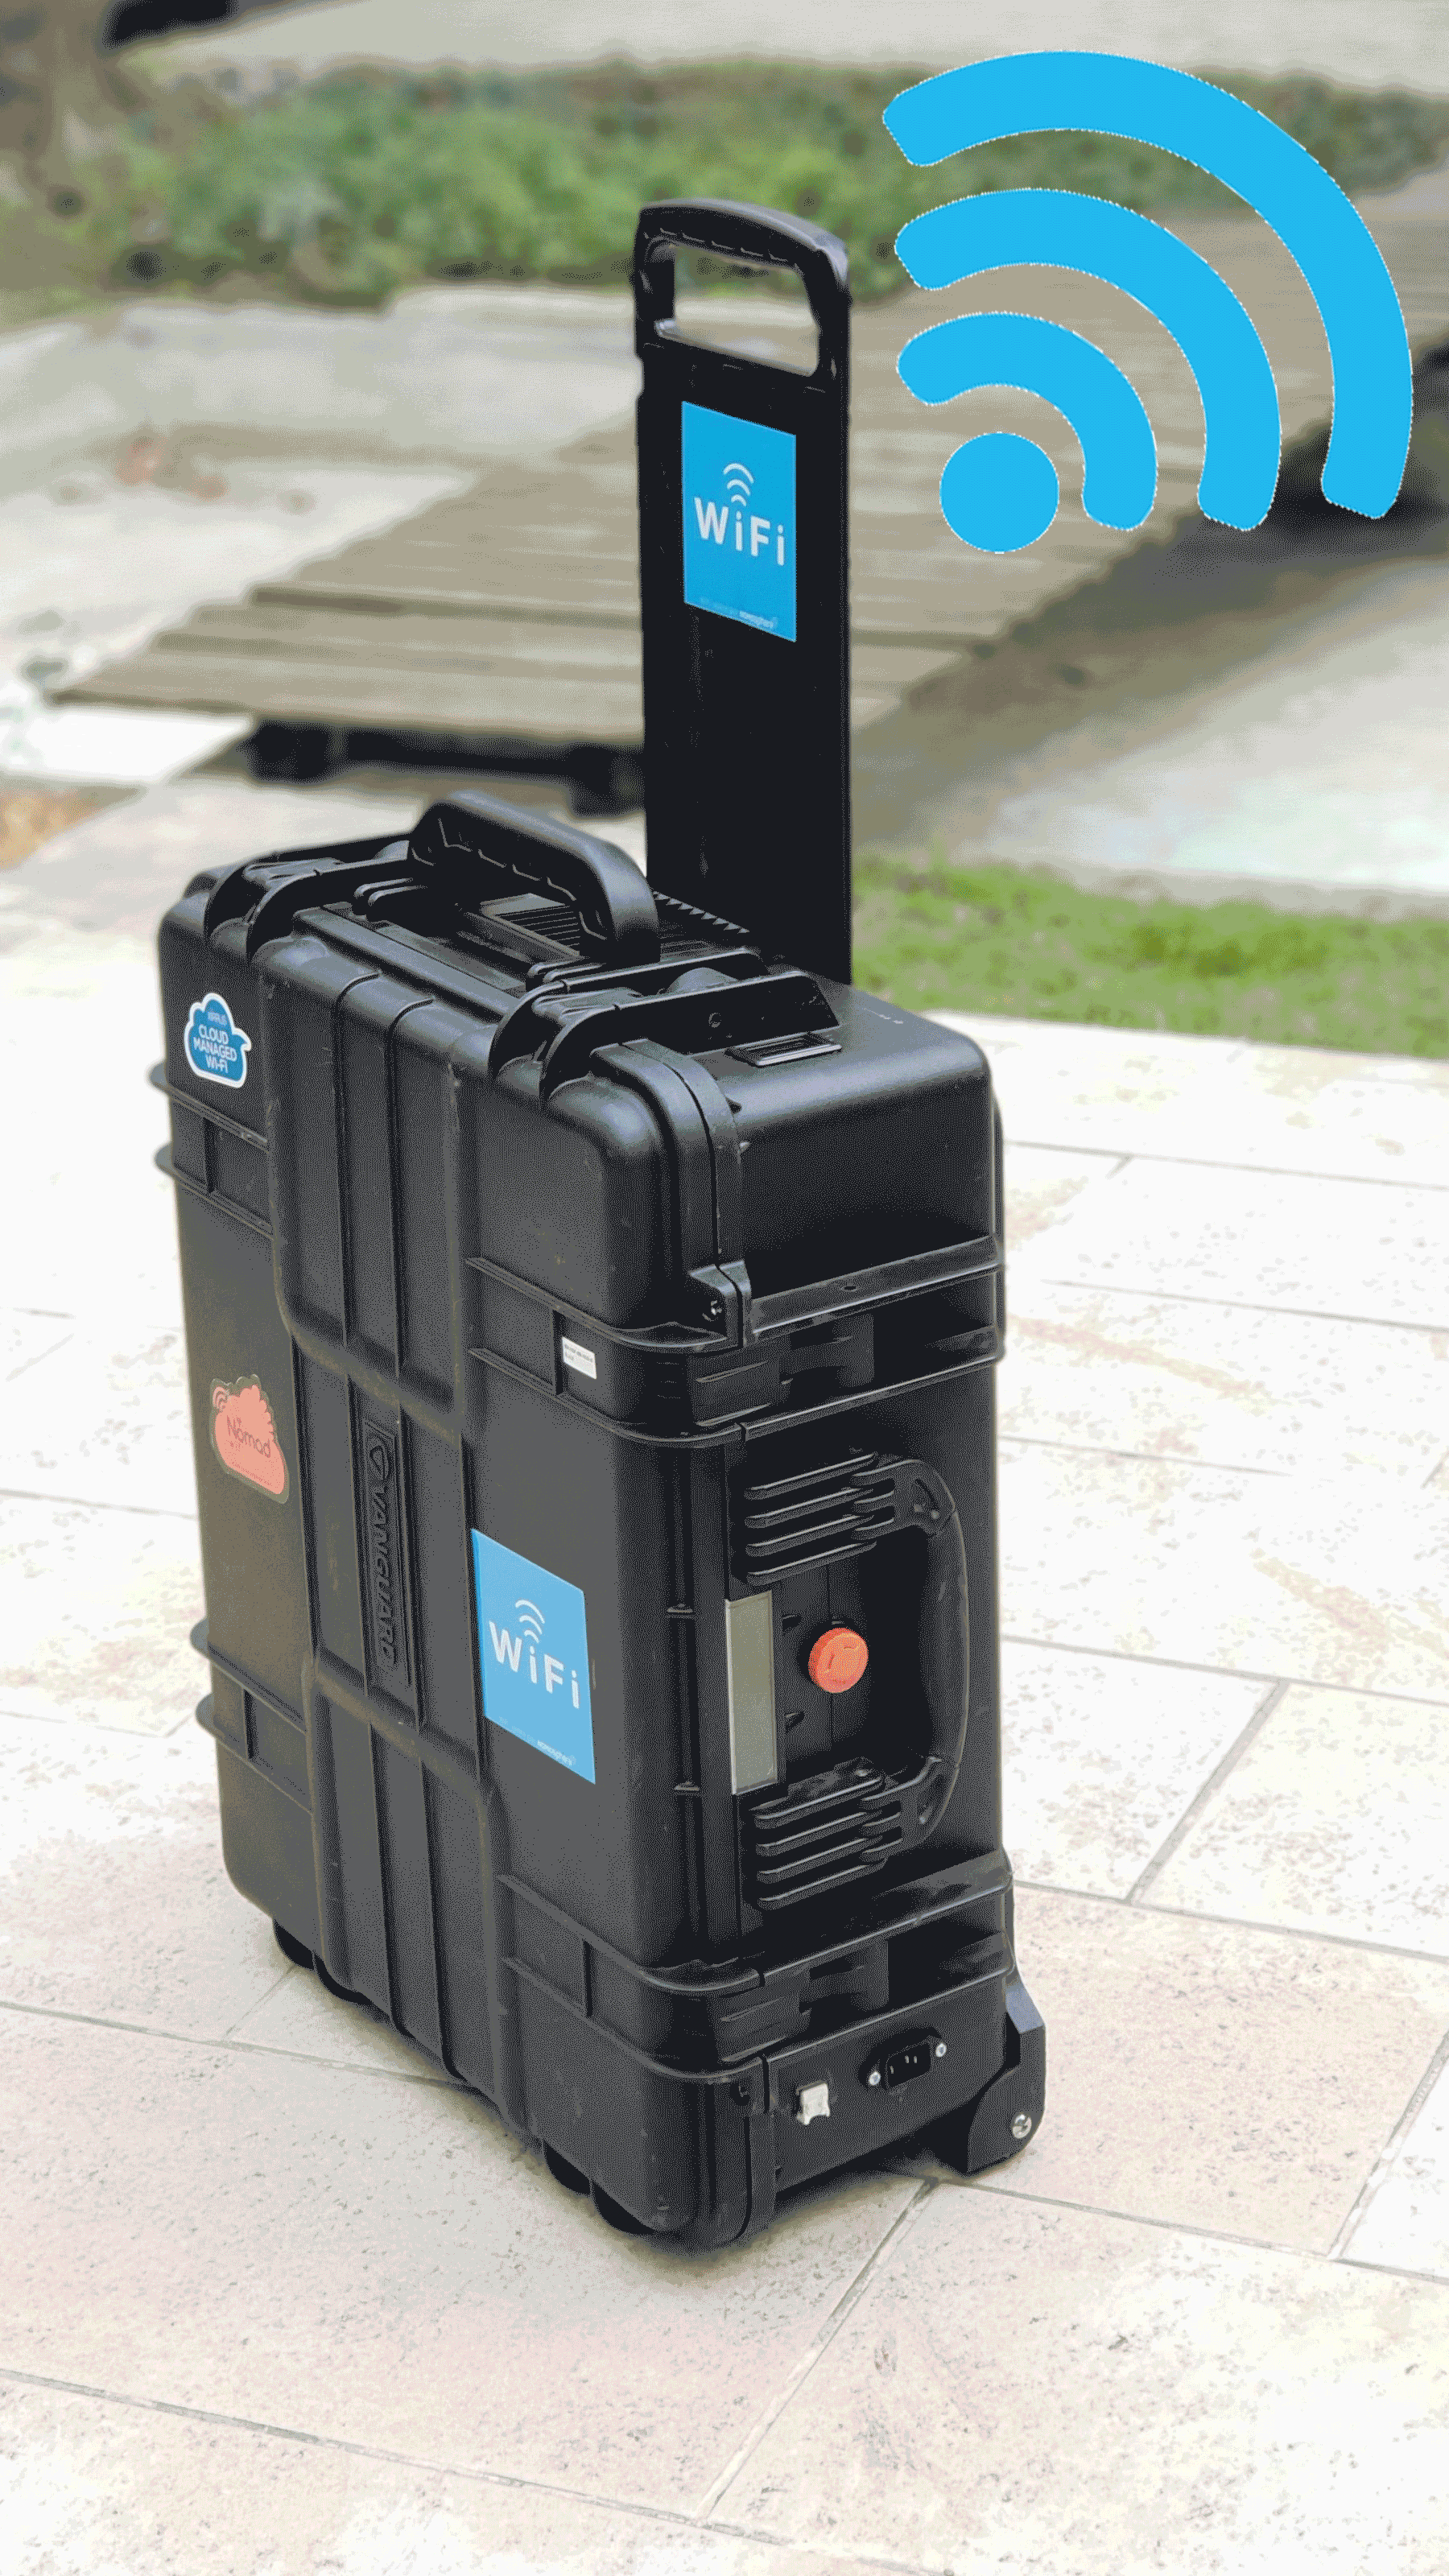 valise infrastructure wifi temporaire